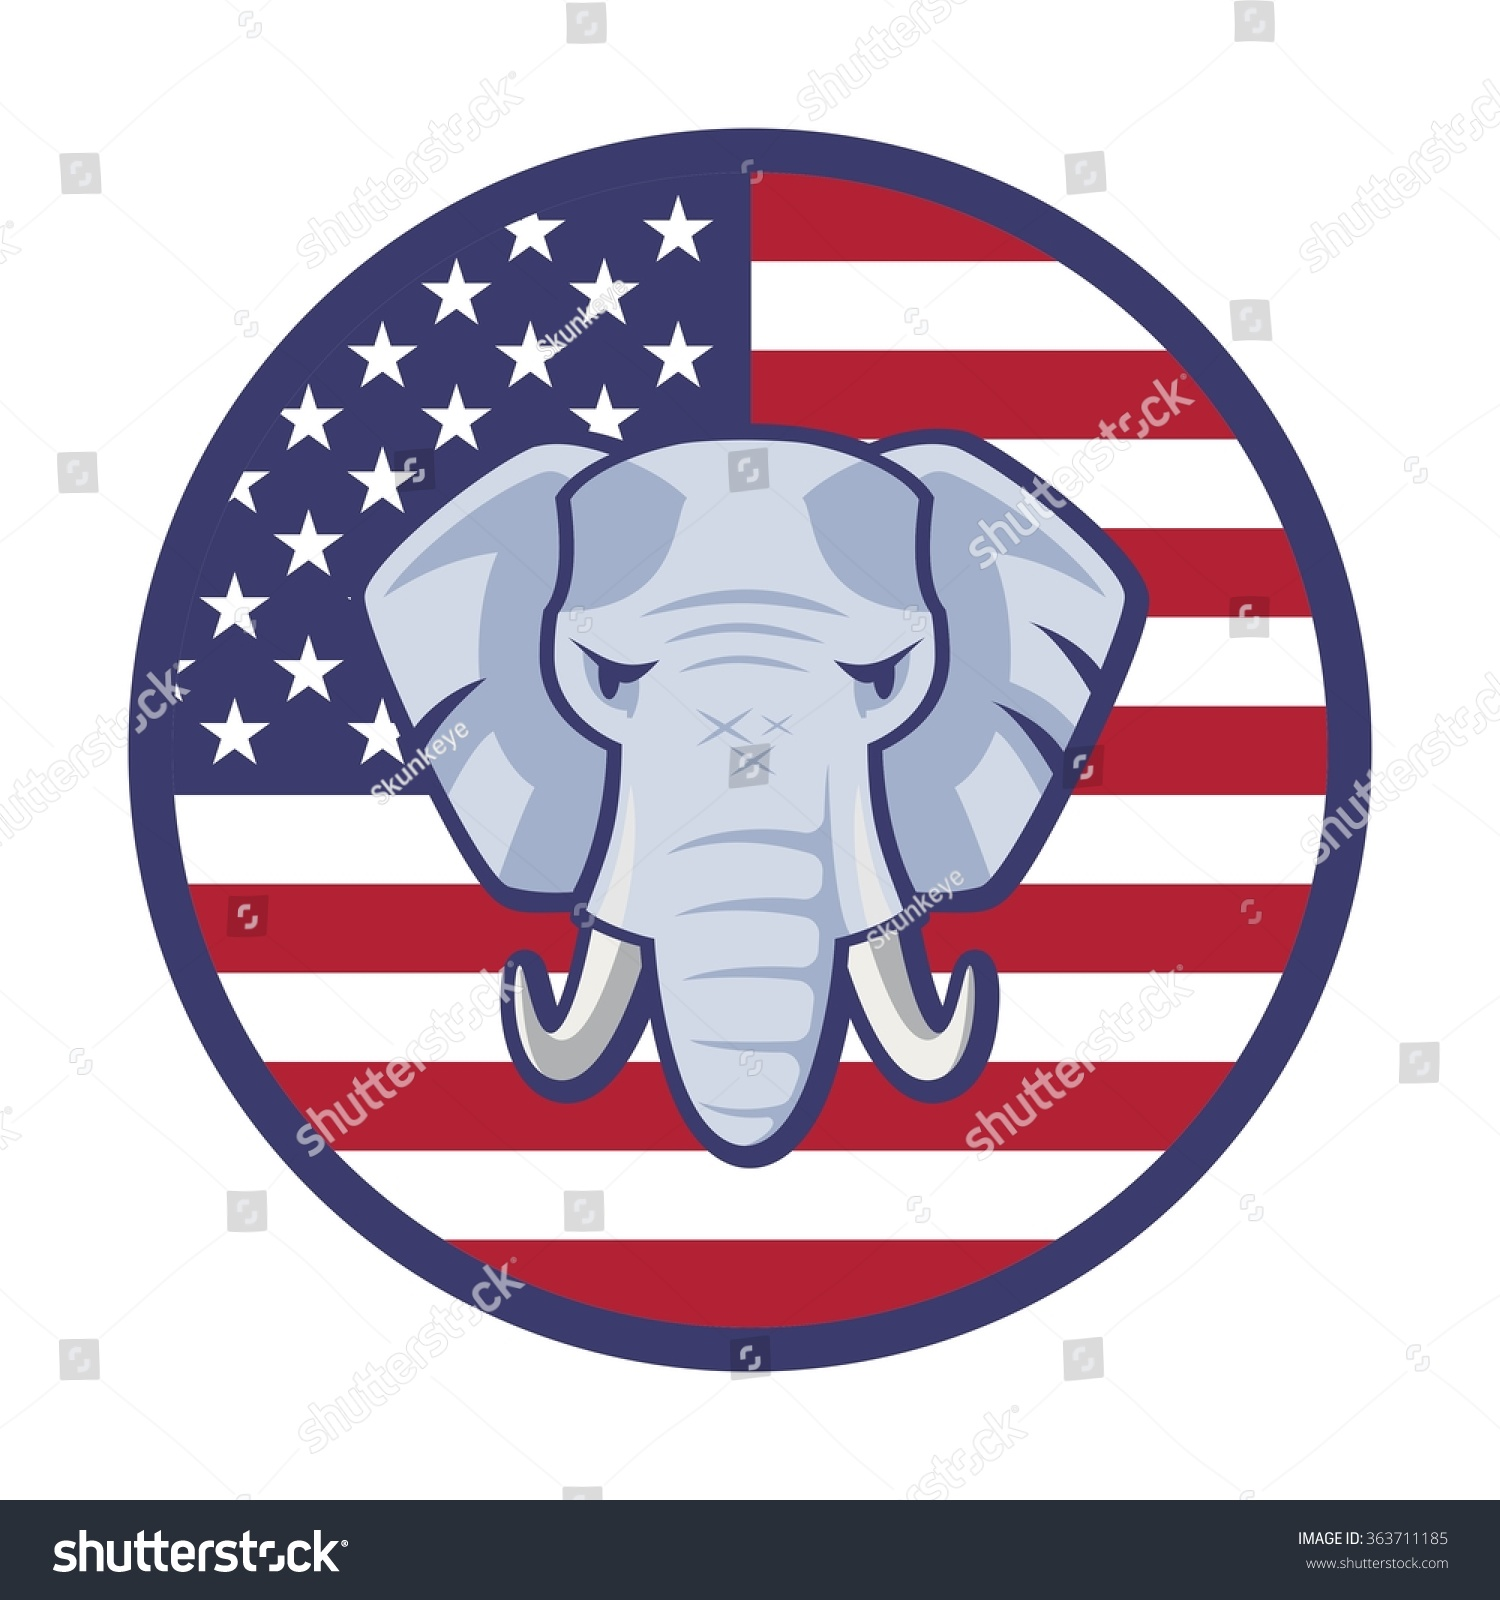 American republican party election elephant symbol stock vector american republican party election elephant symbol vector buycottarizona Images